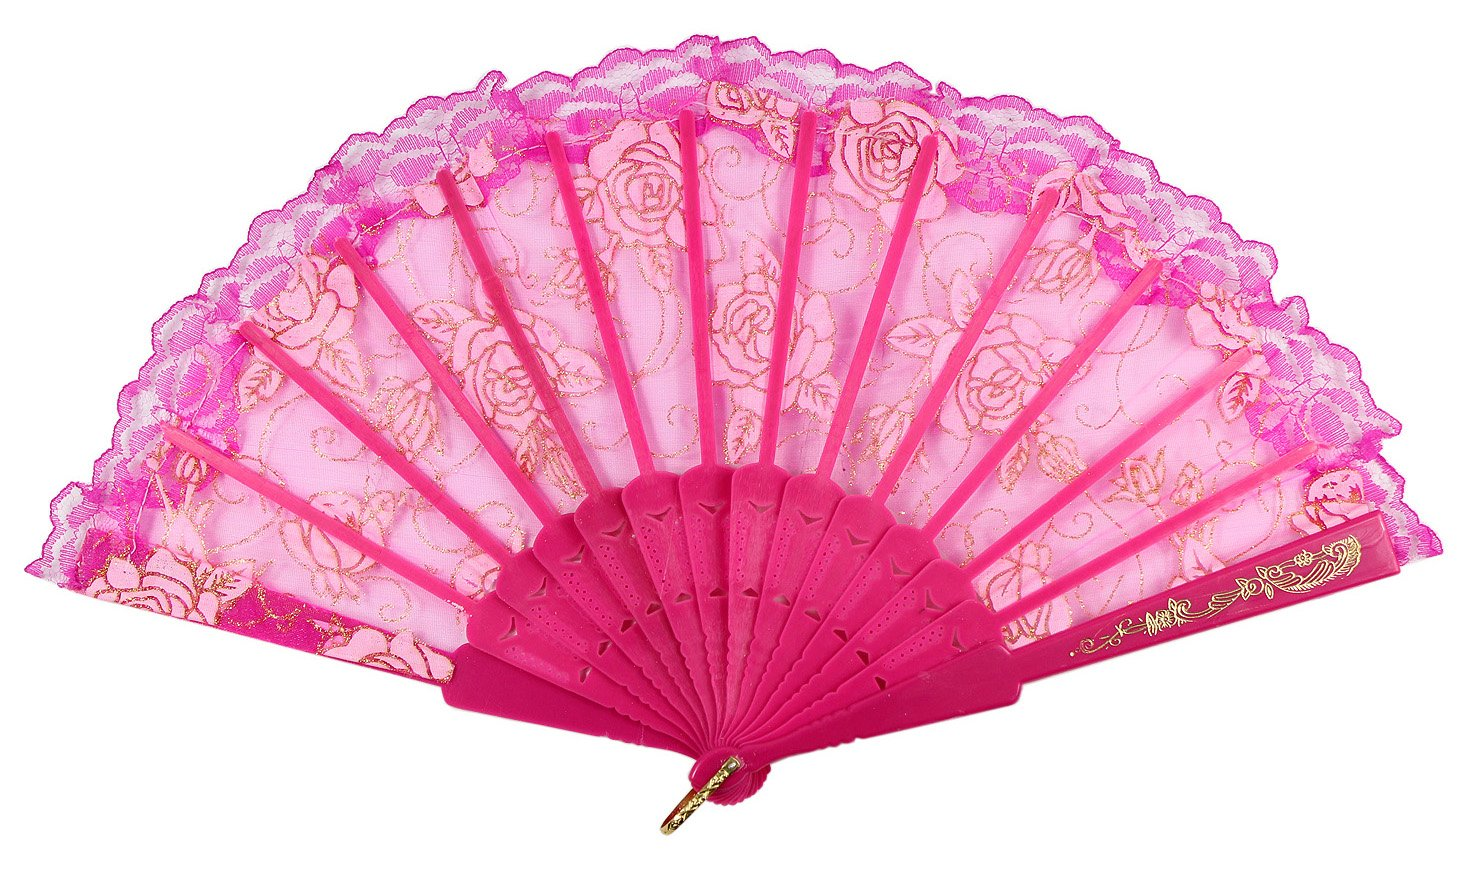 Hot Pink Newstarfactory Lace Flowers Design Plastic Folding Hand Held Fan with Exclusive Gift